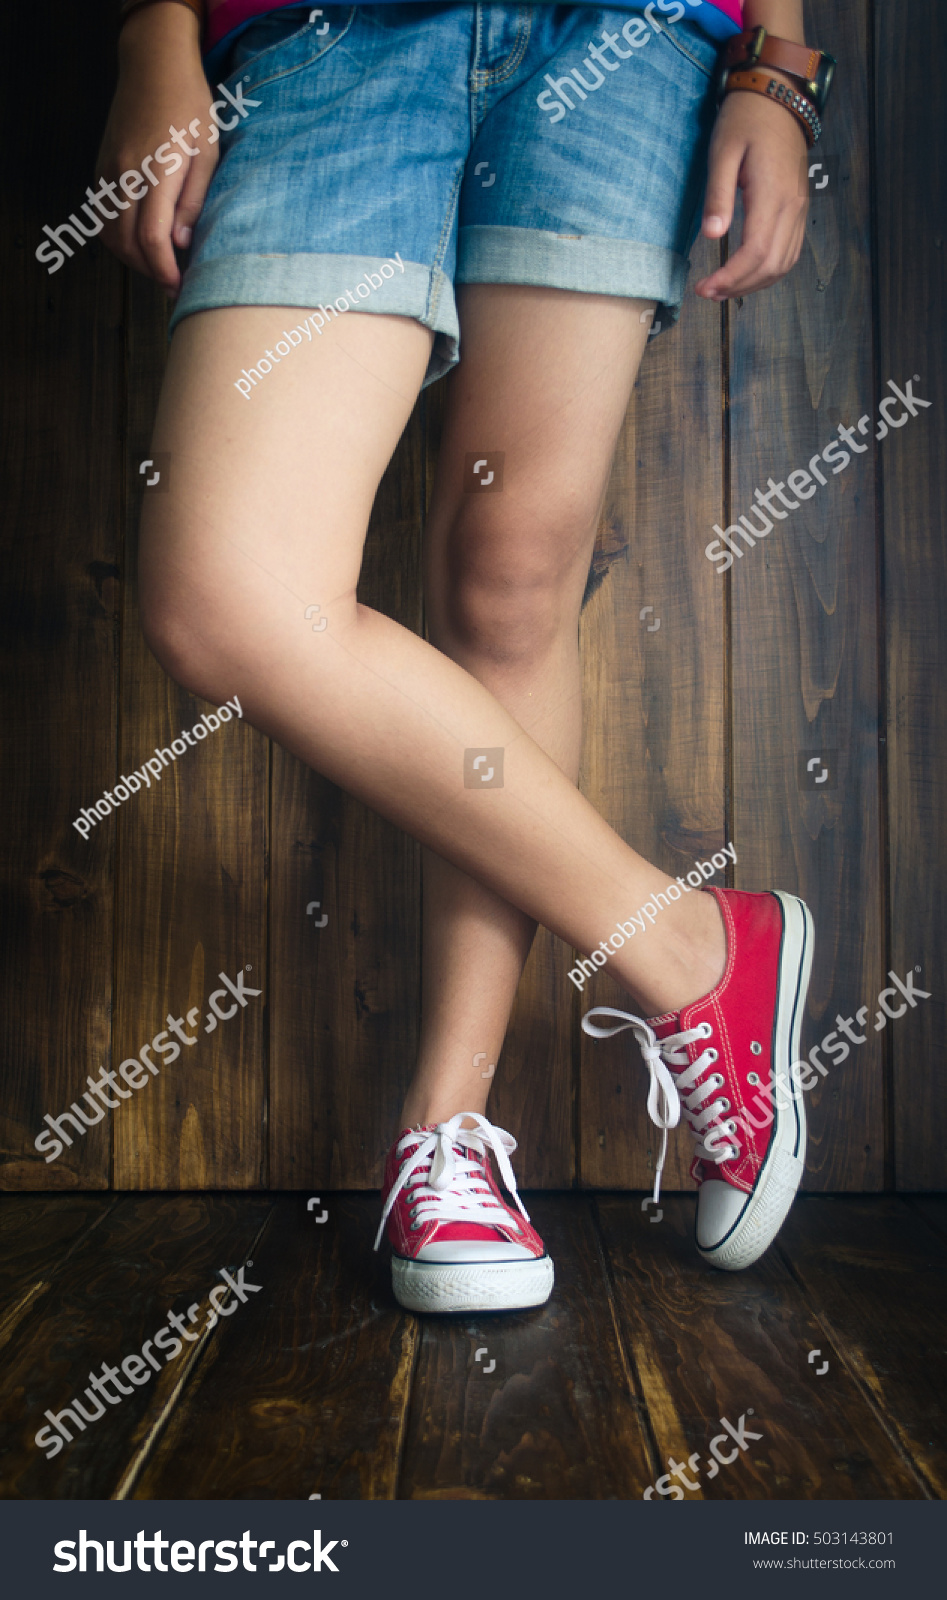 Girls Wear Red Shoes Short Jeans Stock